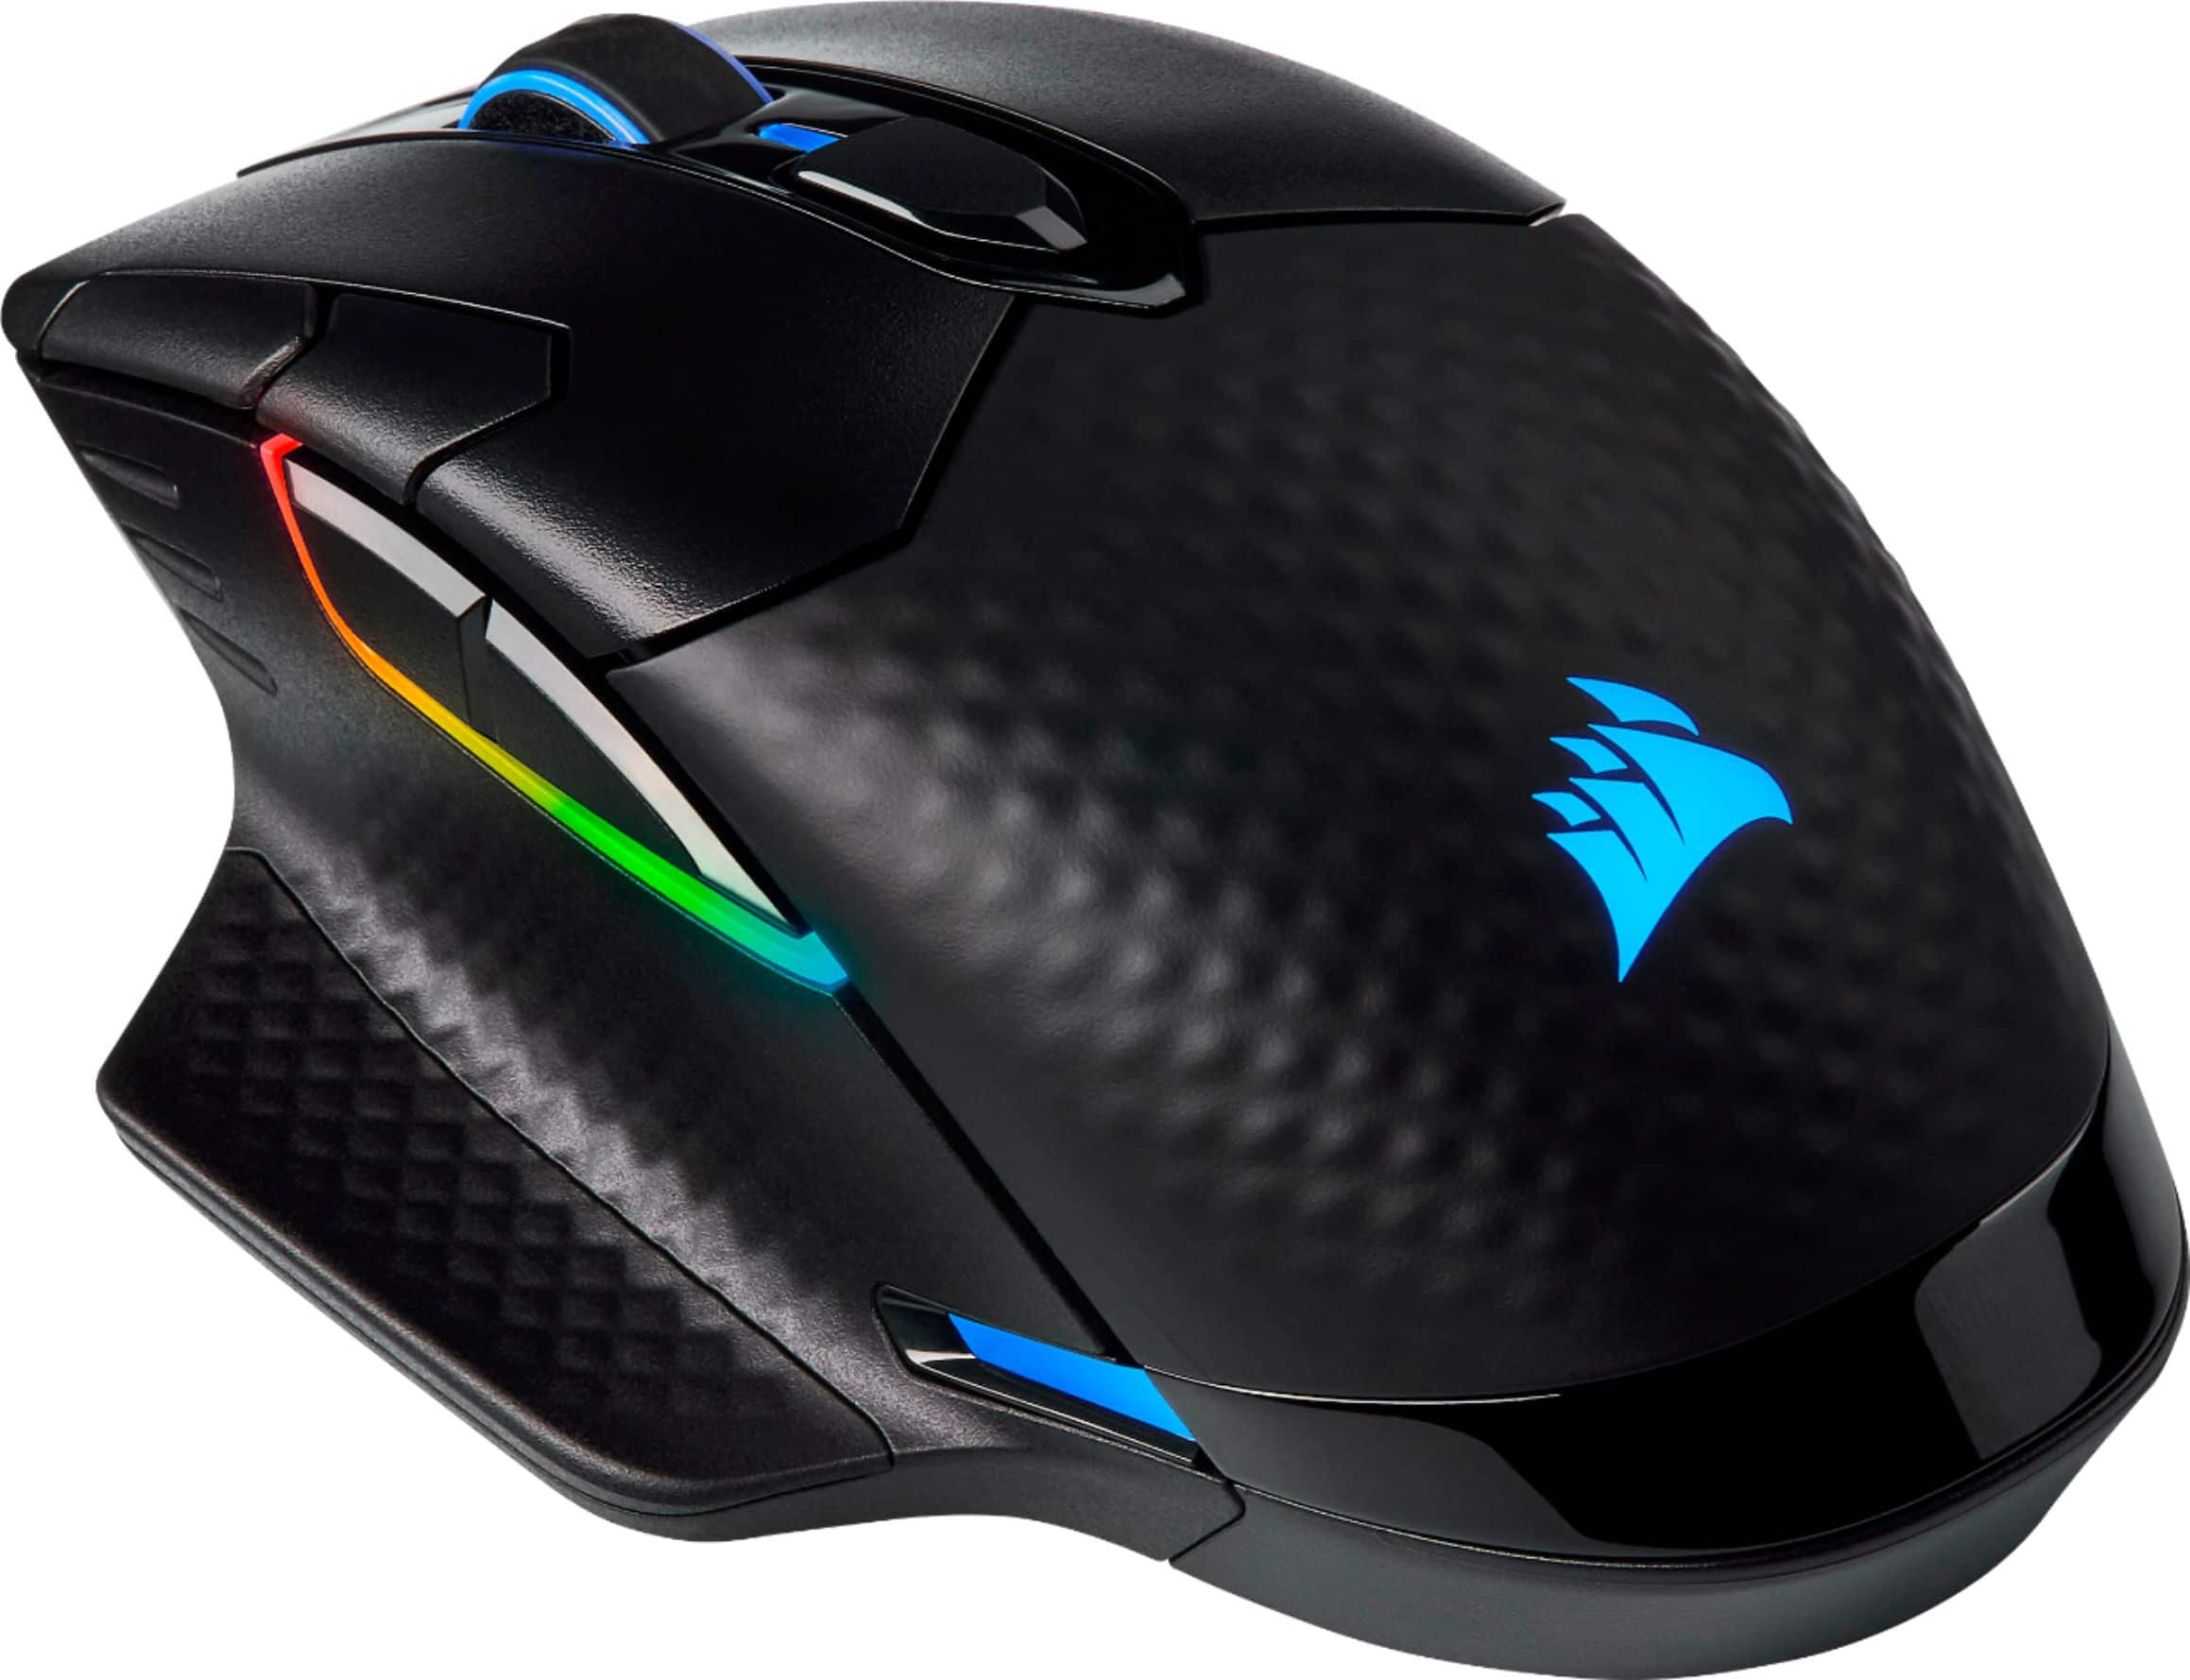 CORSAIR - DARK CORE RGB PRO Wireless Optical Gaming Mouse $70